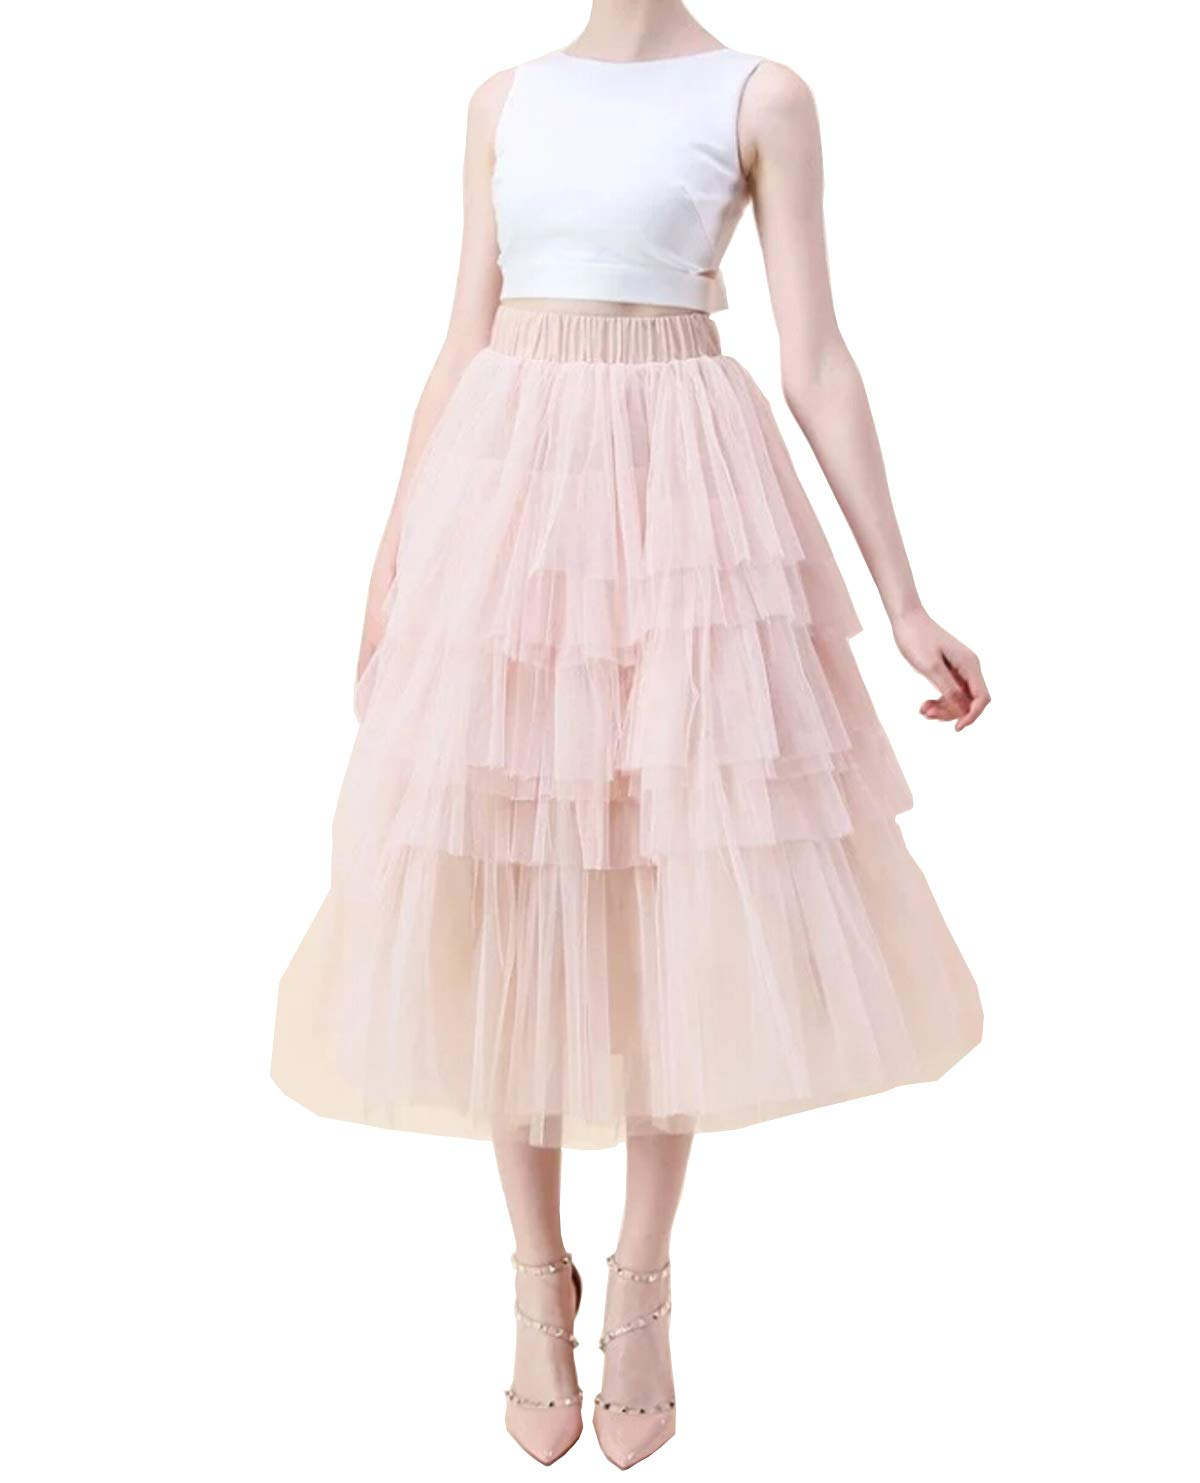 Women Layered Tulle Skirt in Nude Pink Fluffy Princess Tiered Mesh Ballet Prom Party Tulle Tutu A-Line Dress (L) by Dzień dobry (Image #1)